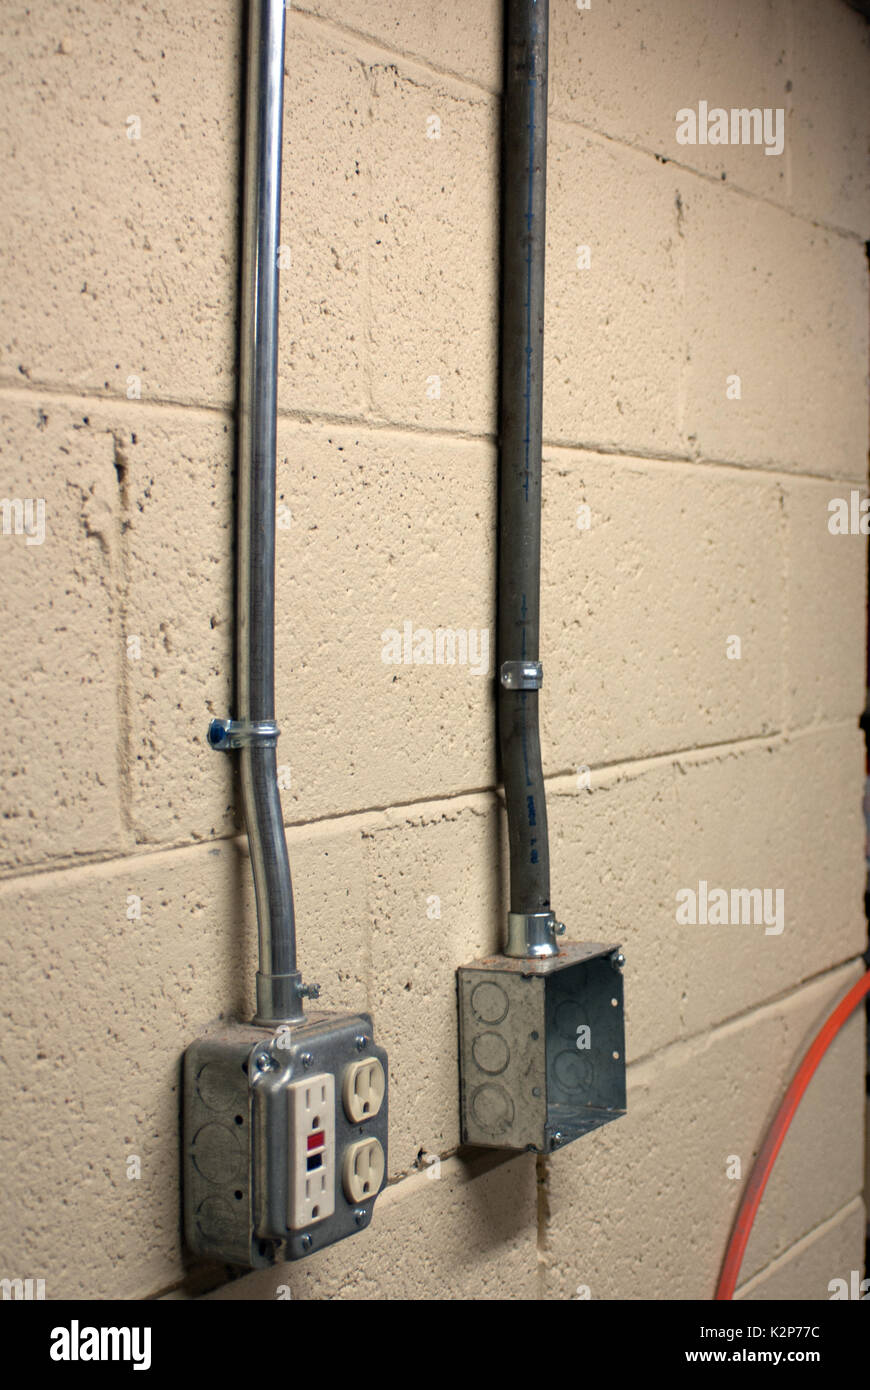 electricity outlet boxes with conduit on painted cinderblock wall rh alamy com